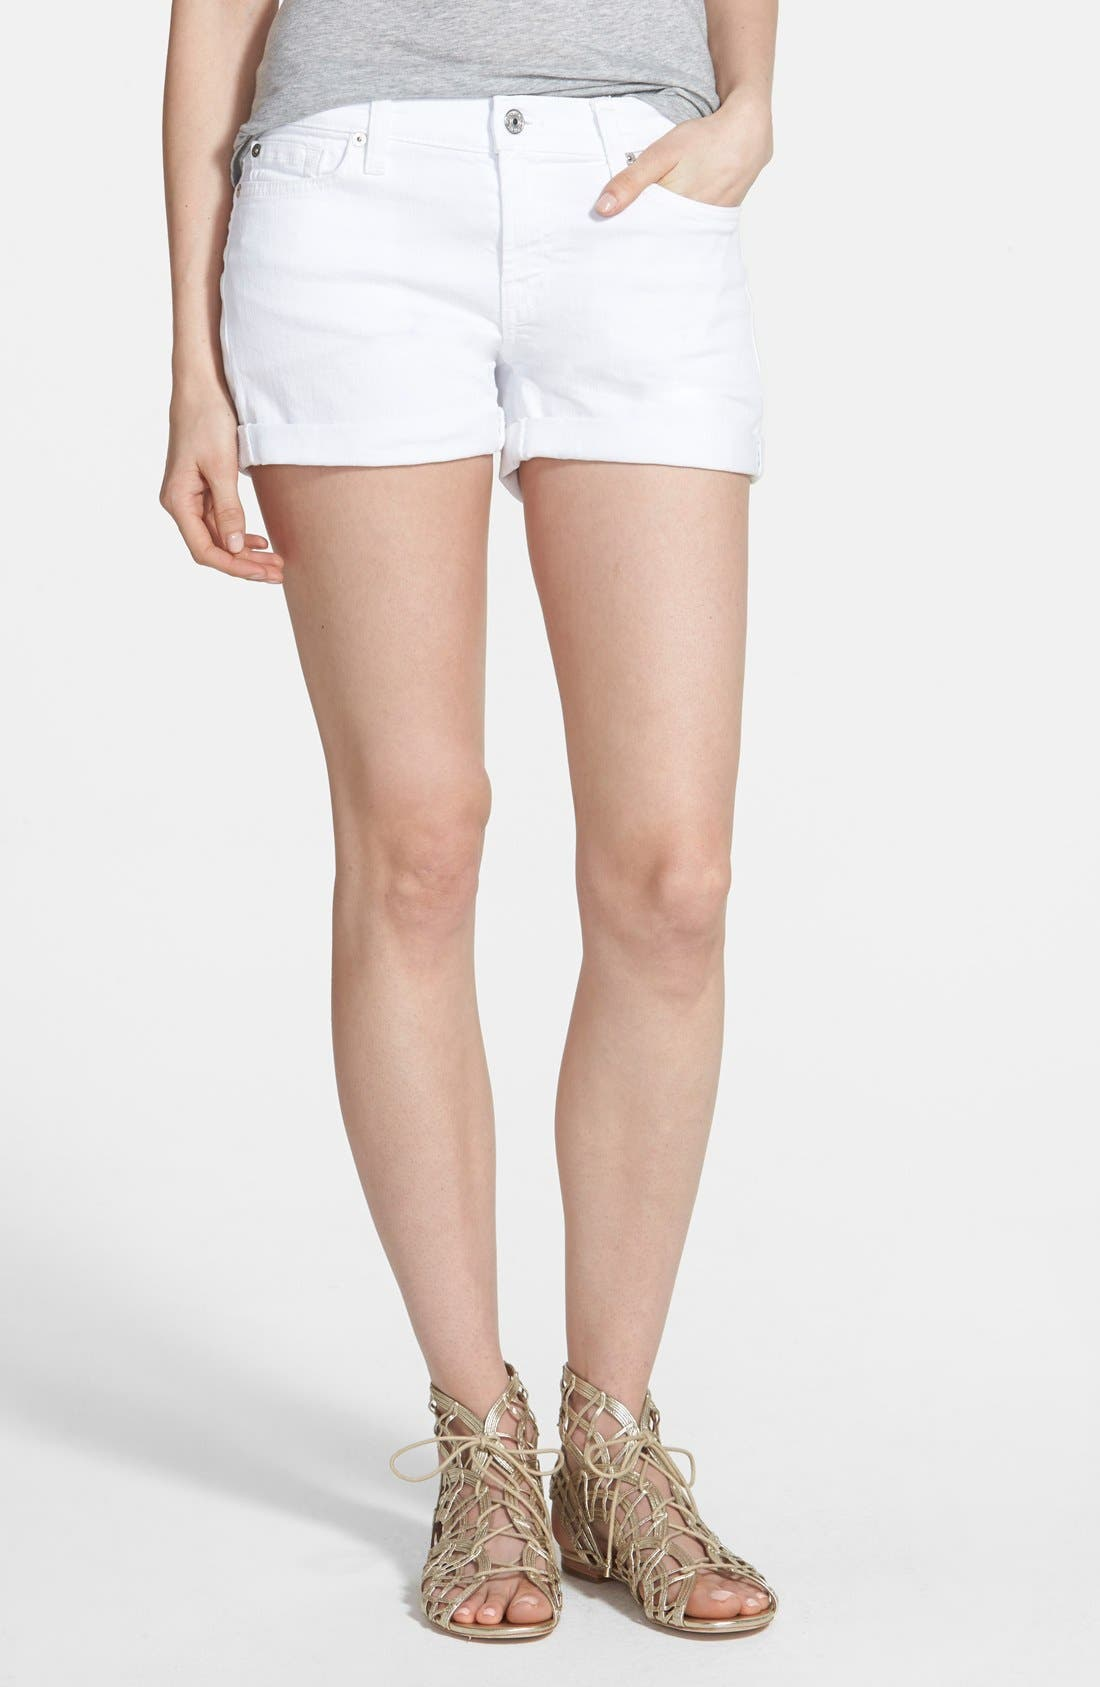 White Denim Shorts for Women | Nordstrom